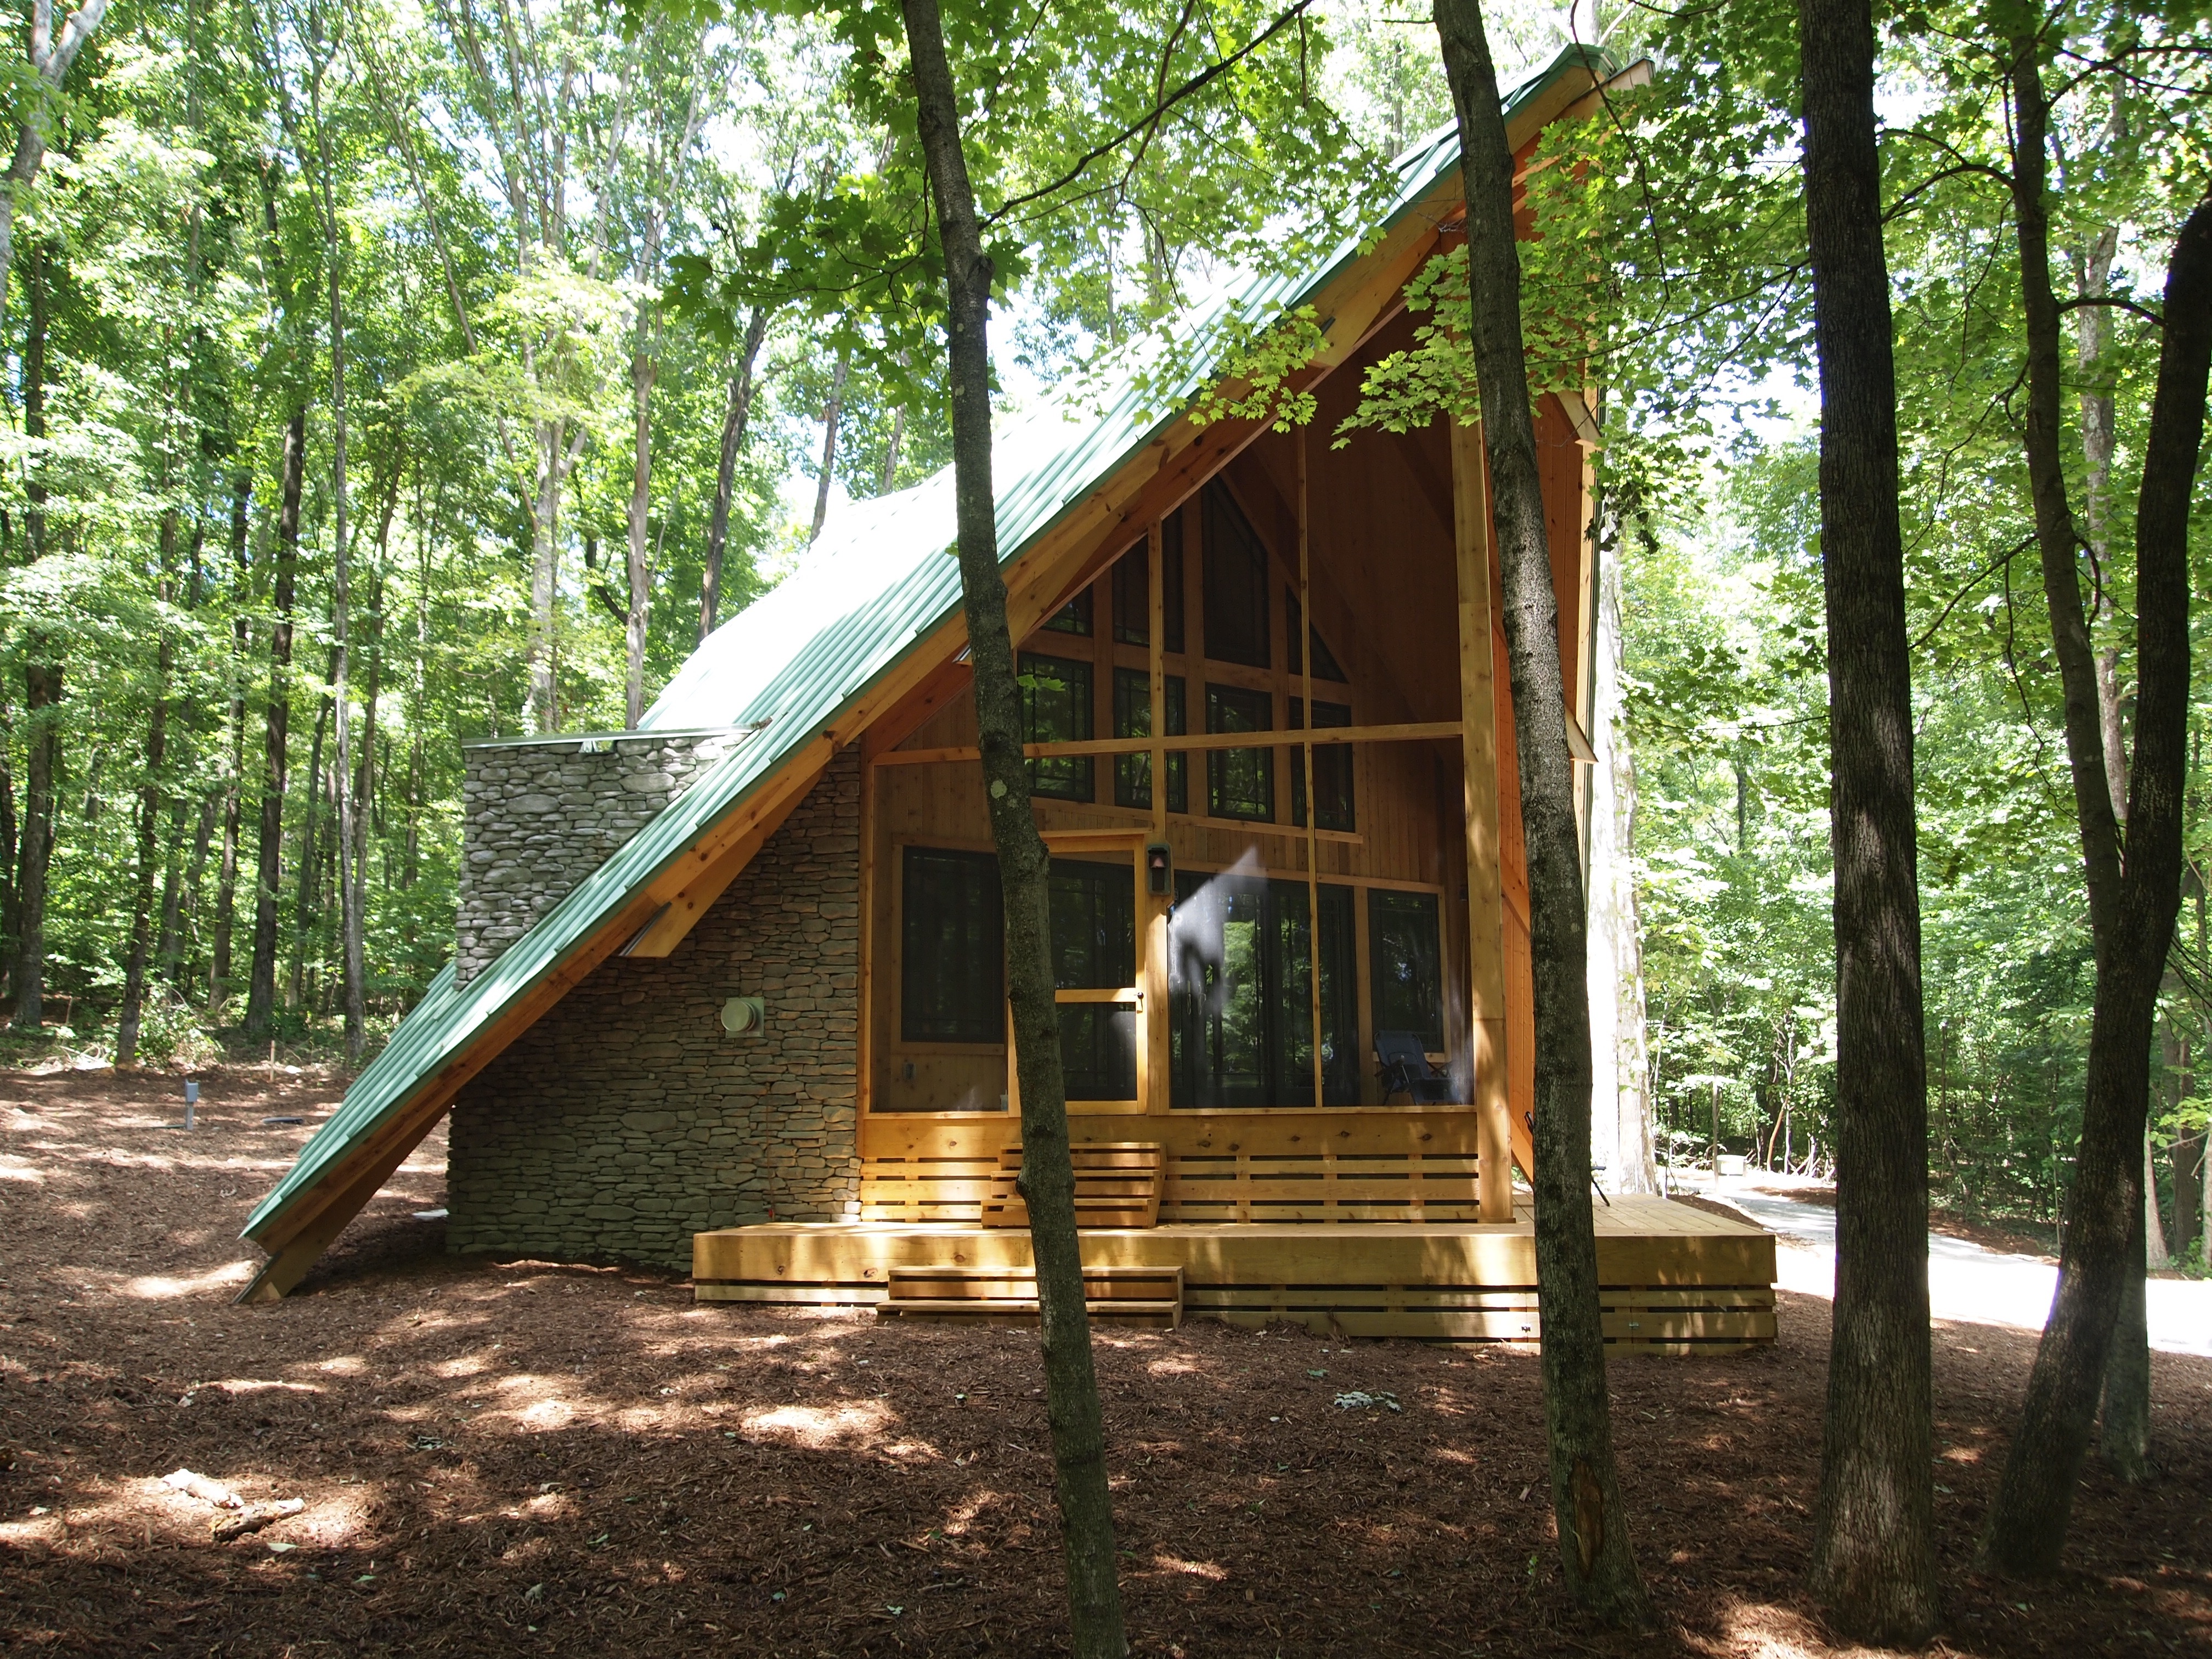 Miraculous Living Large Reveals A Unique Tiny House In The Woods Living Inspirational Interior Design Netriciaus